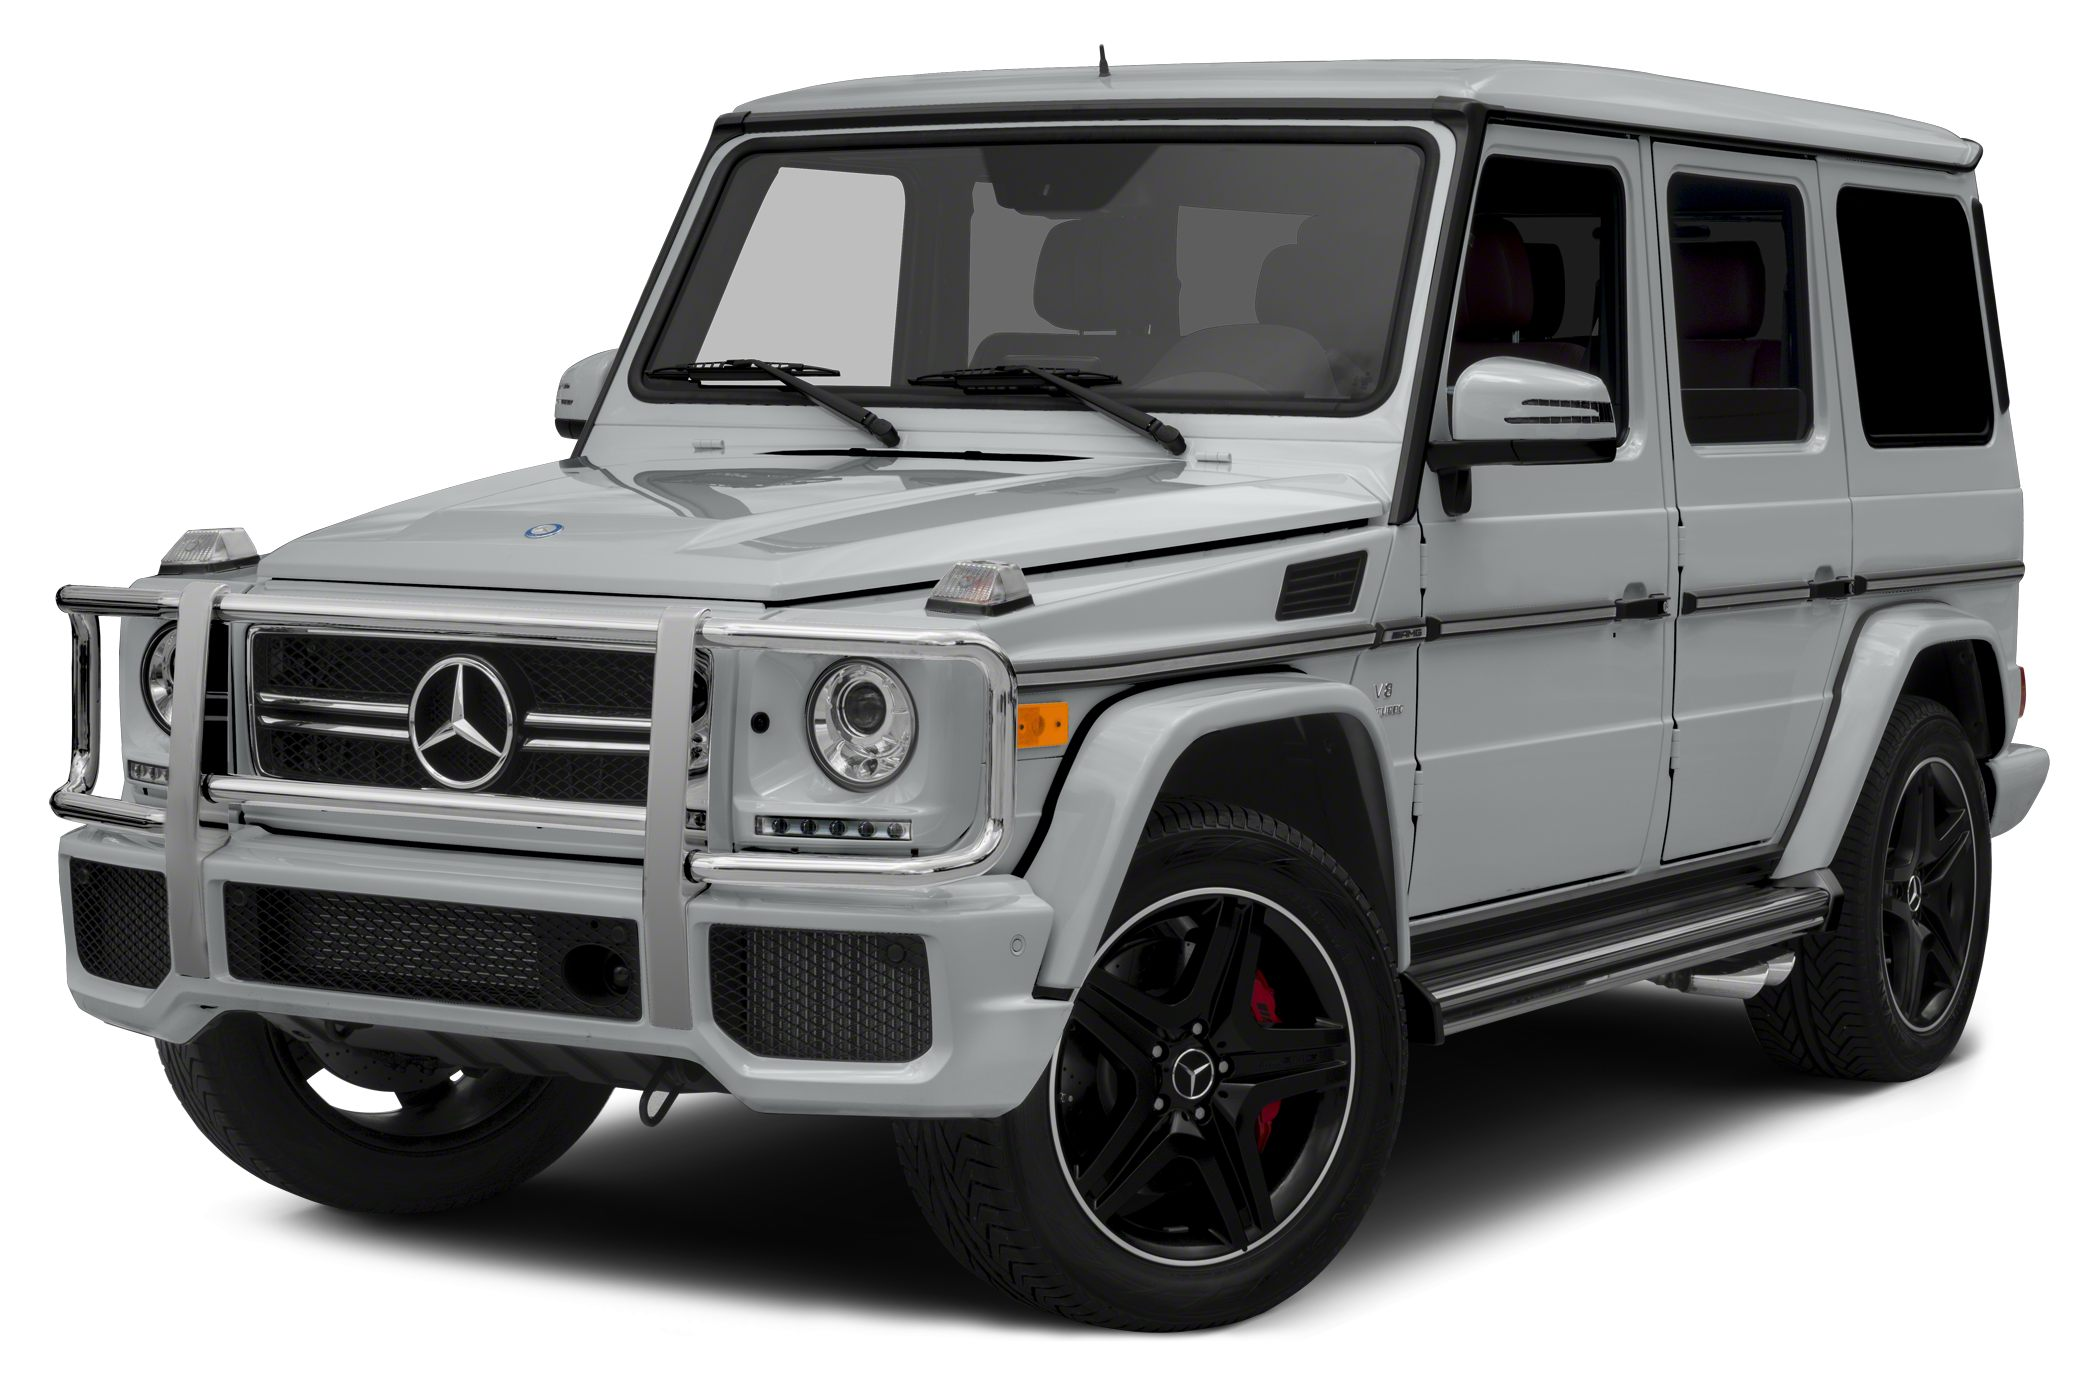 2015 Mercedes-Benz G-Class G63 AMG SUV for sale in Coral Gables for $149,900 with 253 miles.